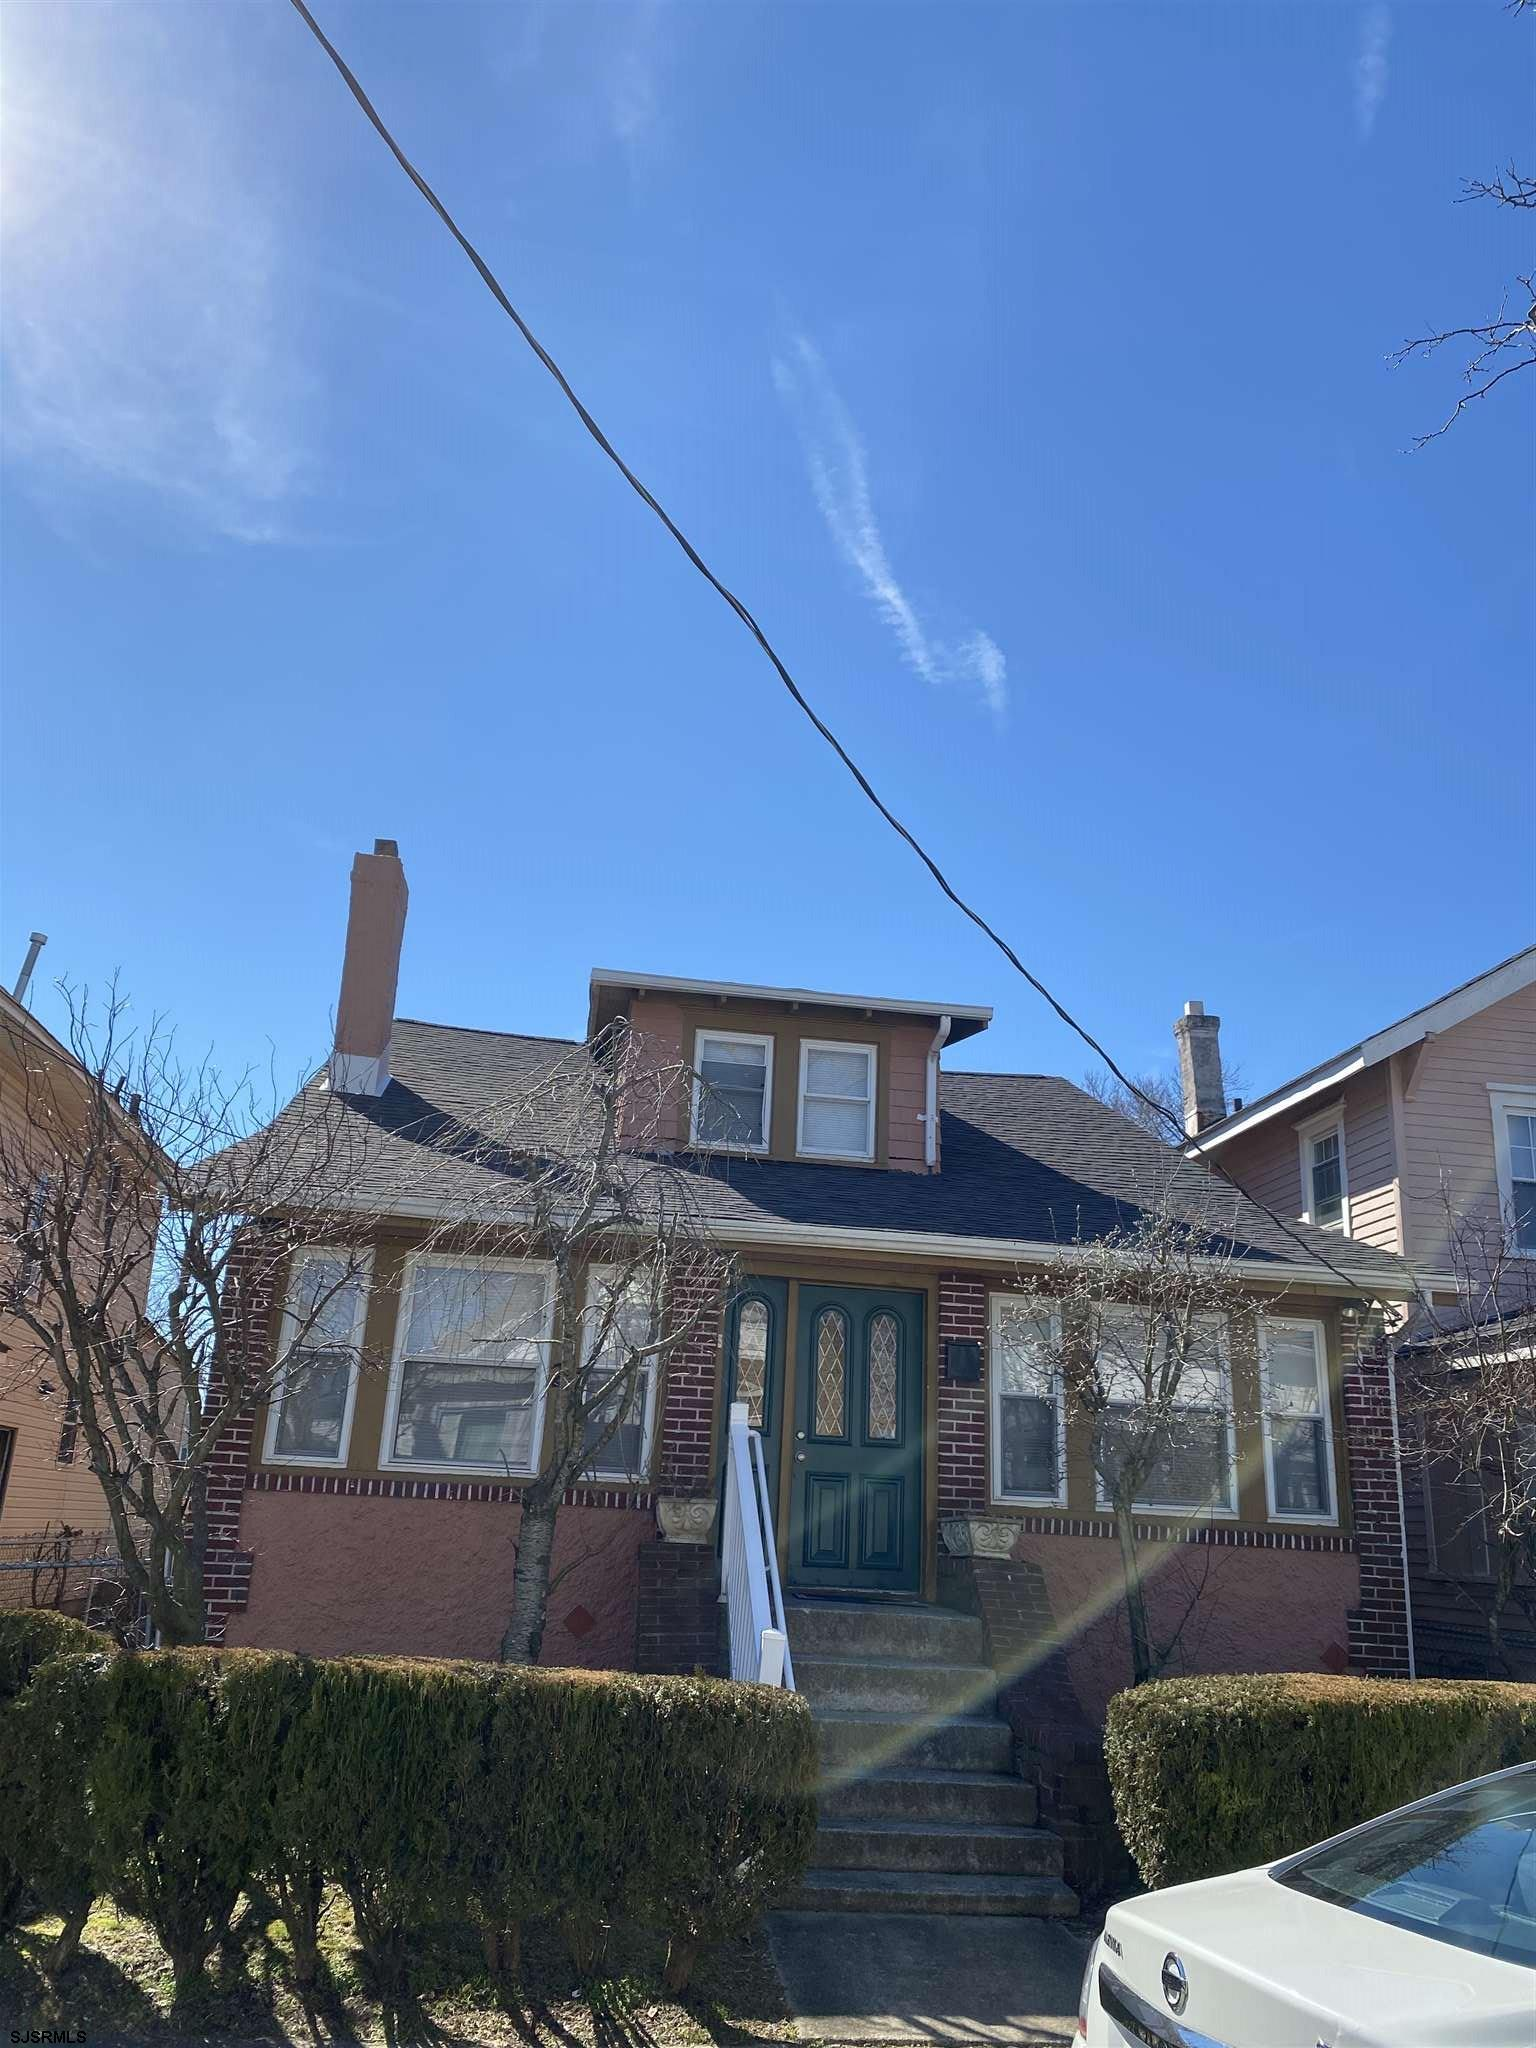 Priced to sell quickly.  Charming bungalow home perfect for a larger family.  New roof, wood burning